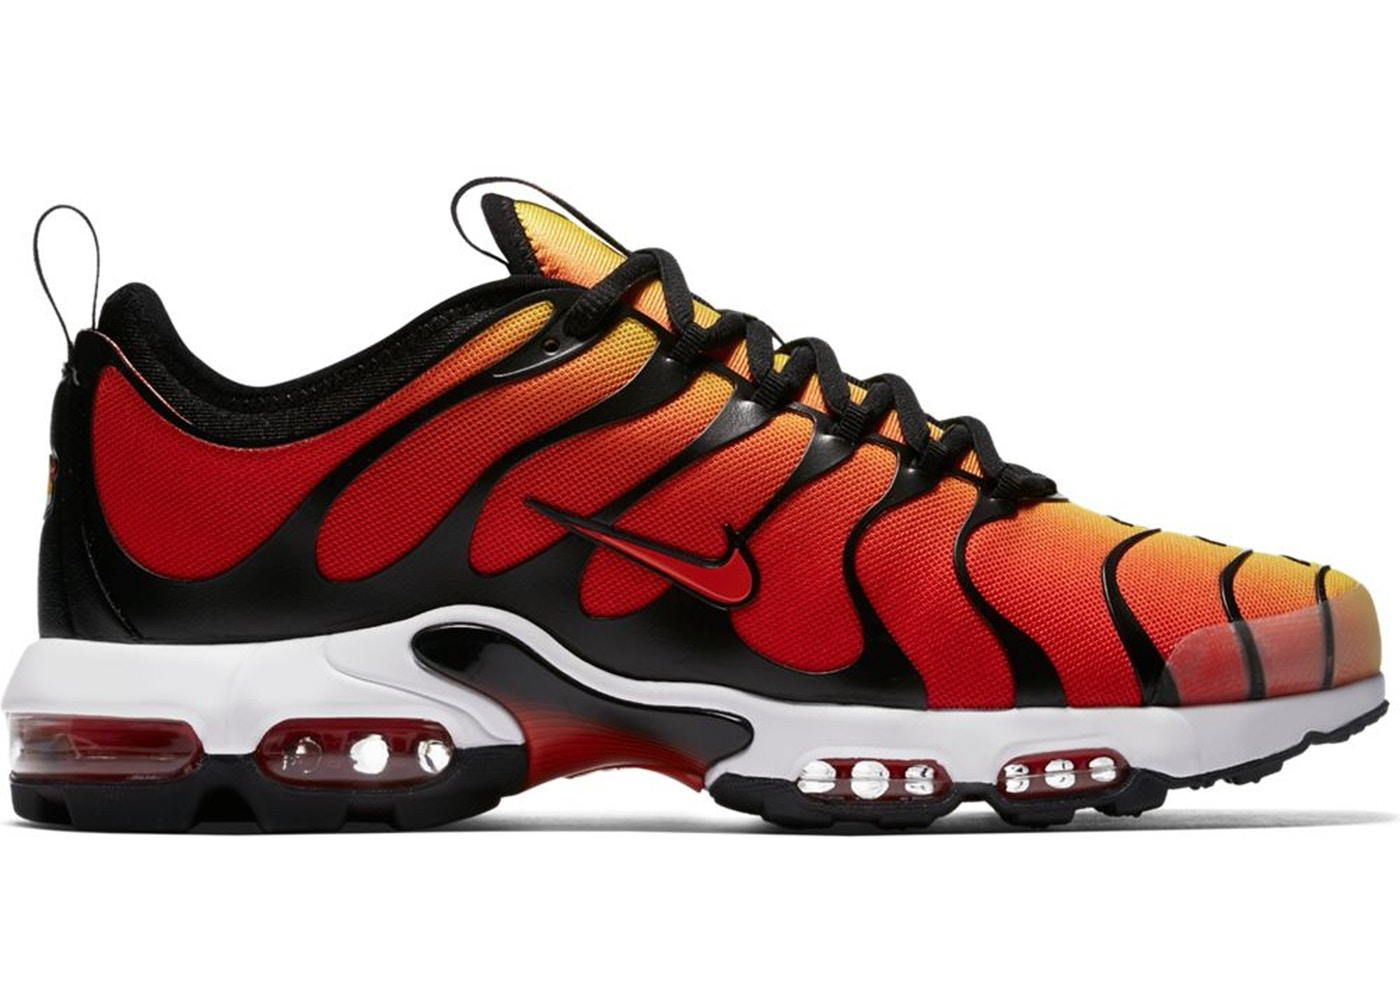 Nike Air Max Plus Tn Ultra Tiger 898015 004